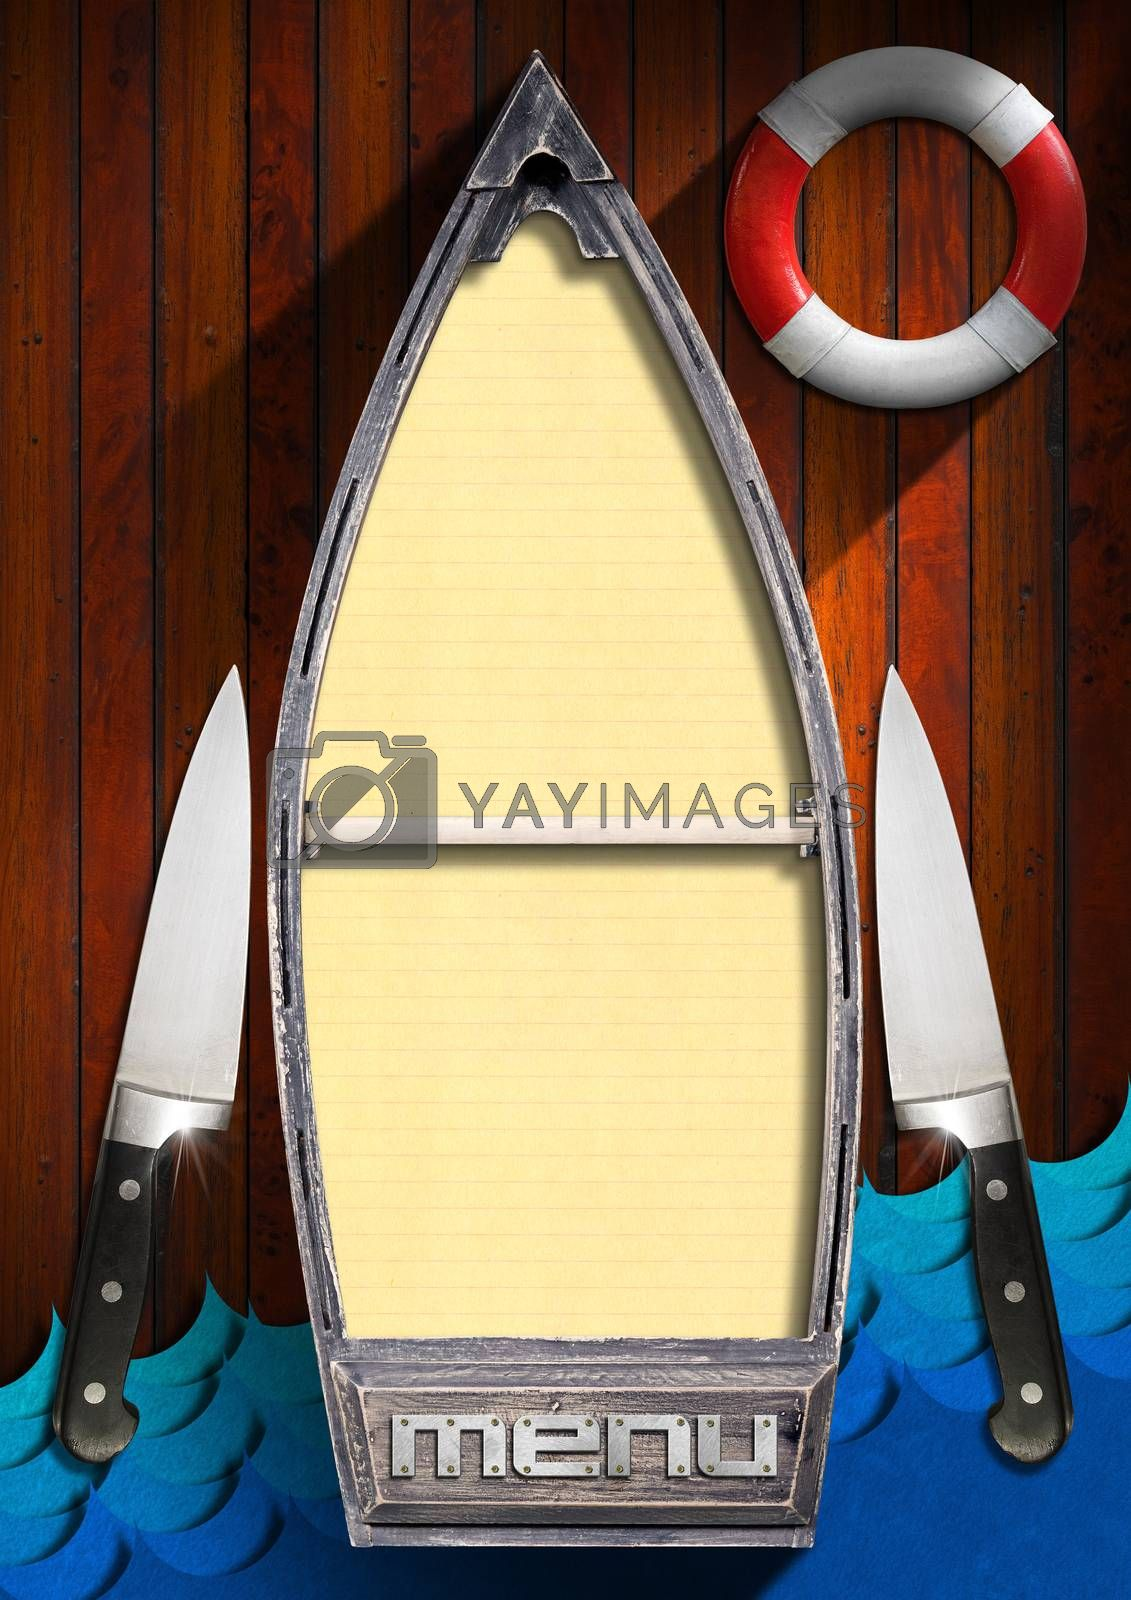 Wooden background with small boat with yellow empty pages, red and white lifebuoy, kitchen knives and stylized waves. Template for recipes or seafood menu